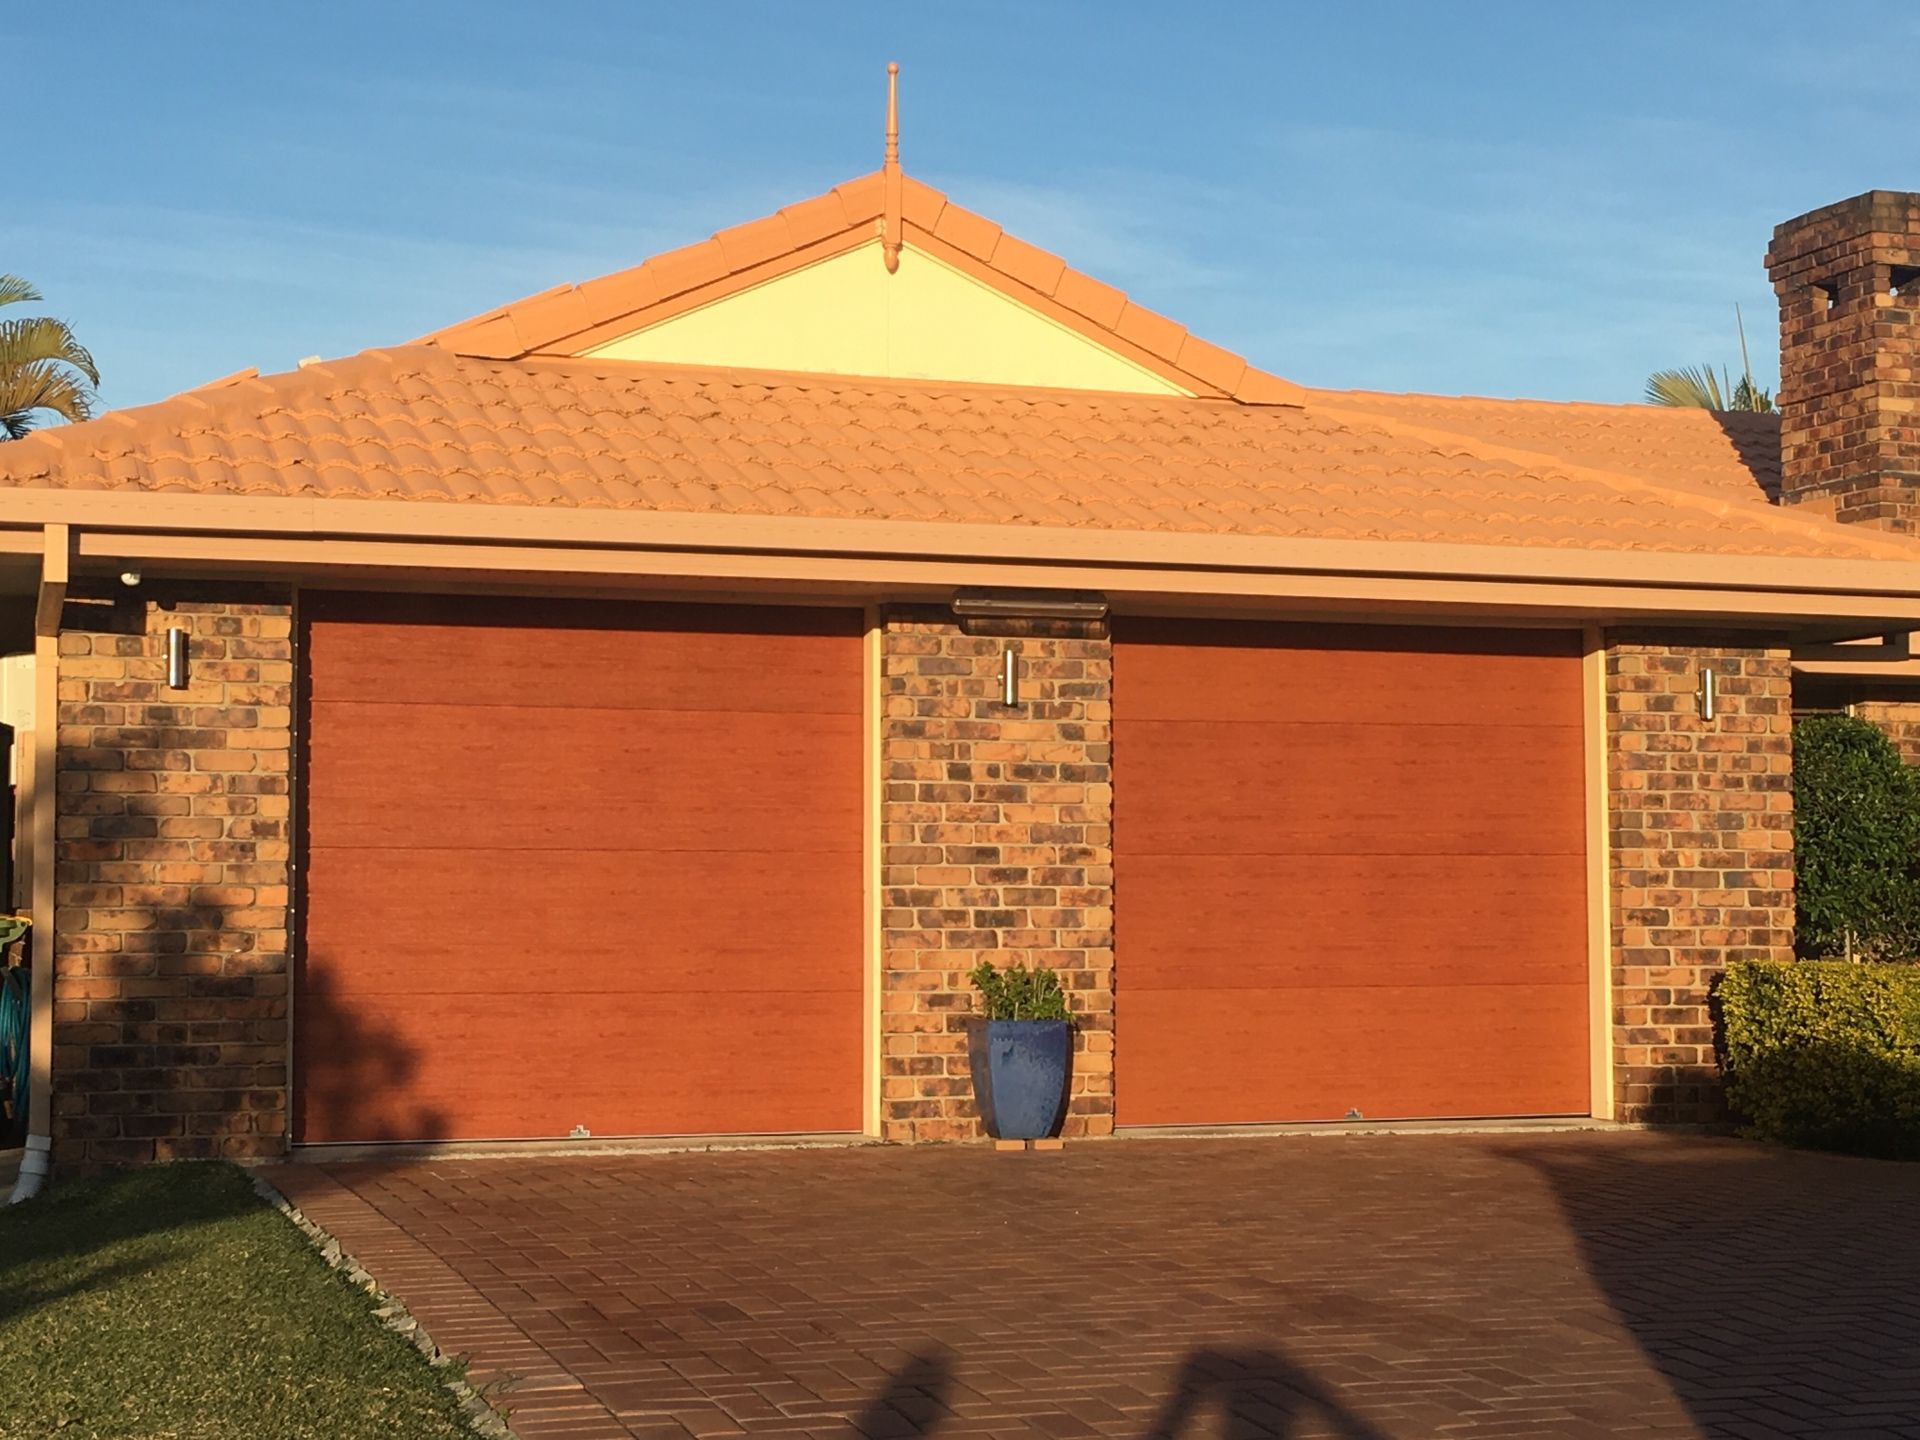 Centurion Sectional Door. Mediterranean Red Gum & Centurion Sectional Door. Mediterranean Red Gum | Garage Doors ... pezcame.com